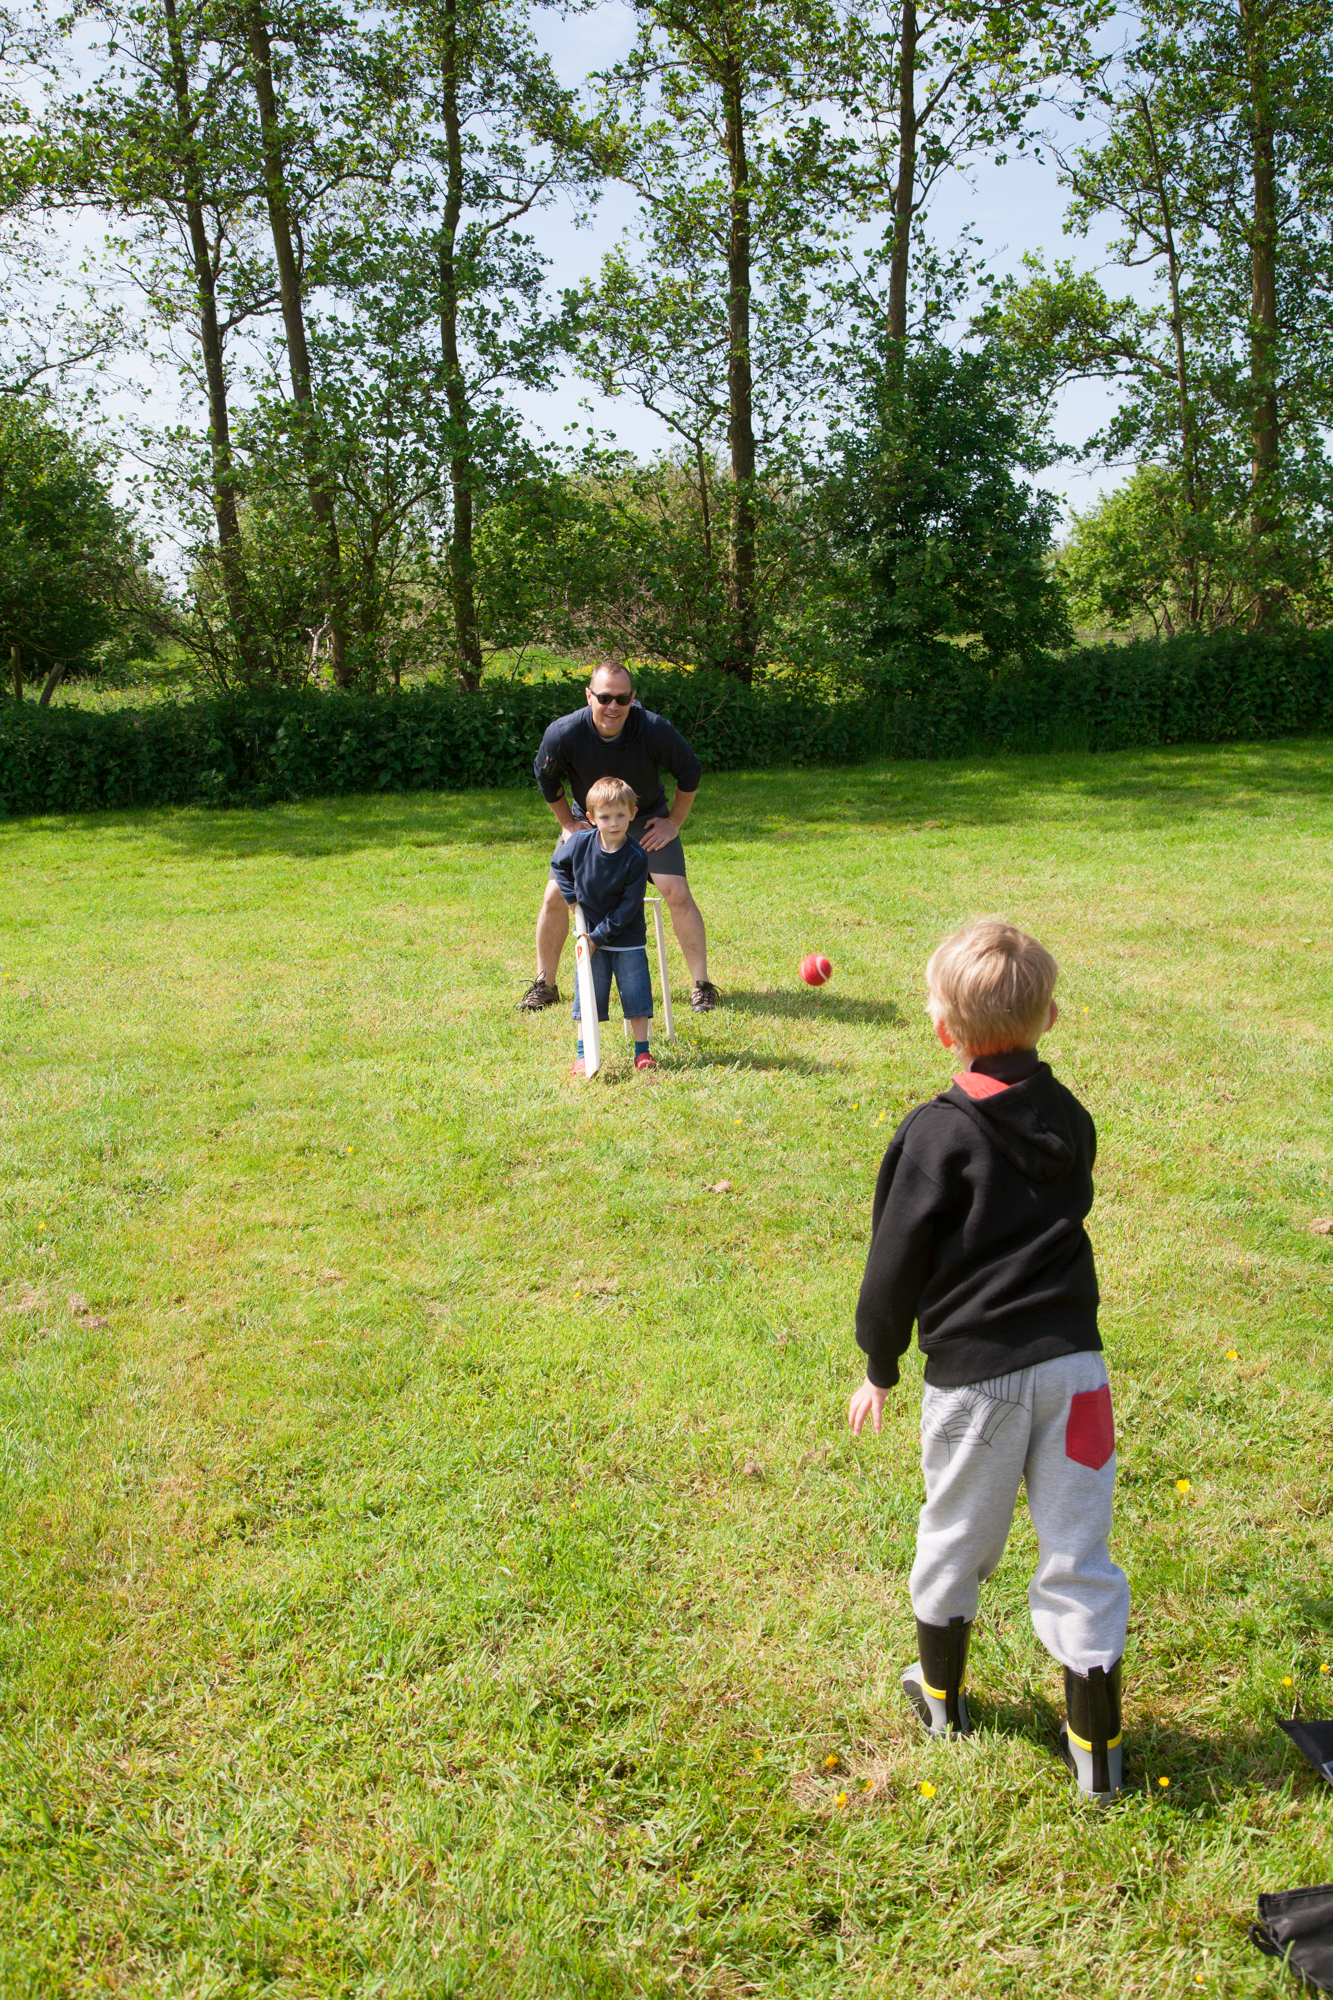 dulwich-herne-hill-family-photographer-london 20150524 20150522-26 7484_.jpg